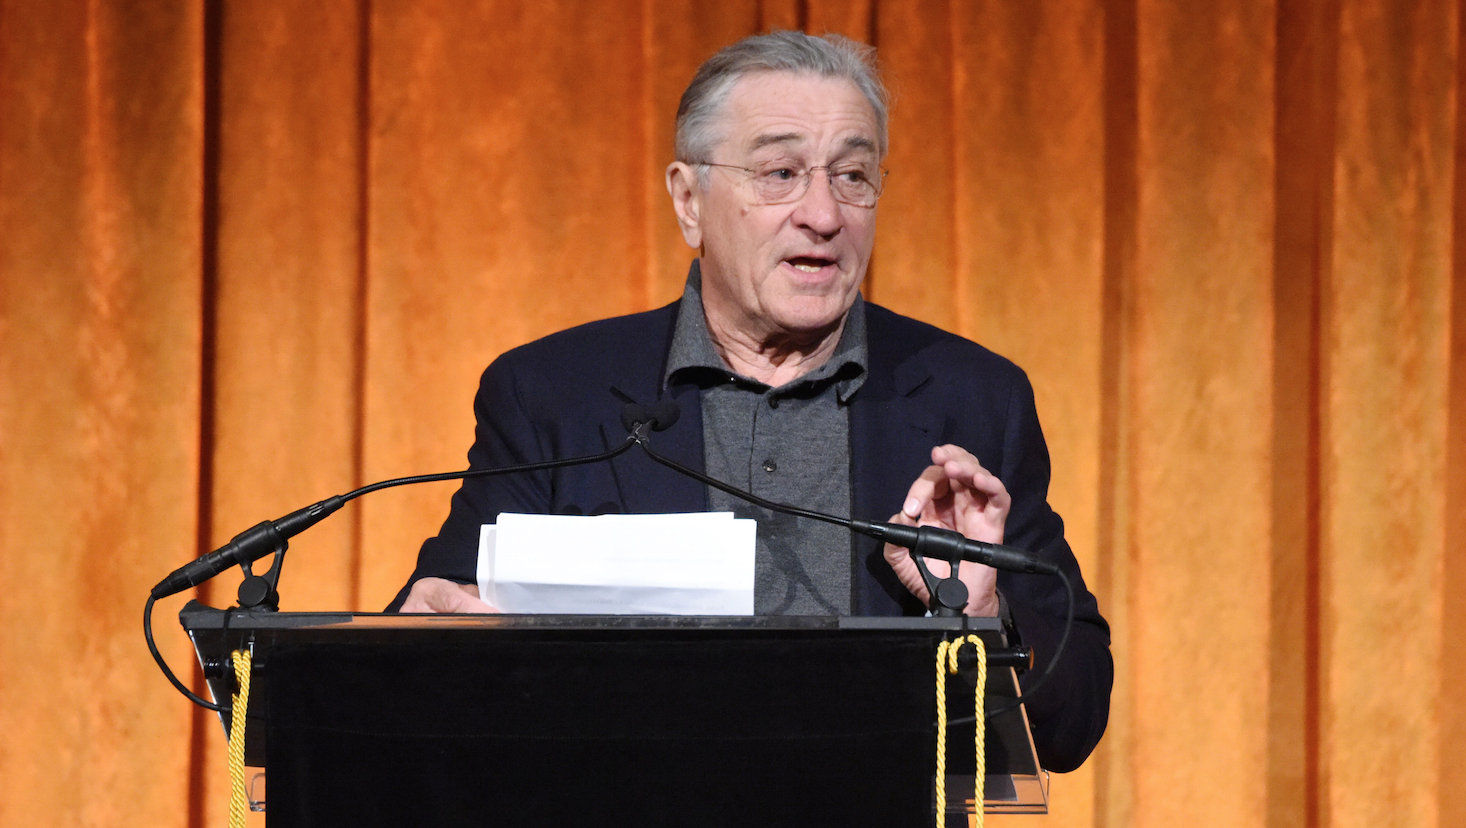 Robert De Niro attacks Trump in profane rant at awards gala